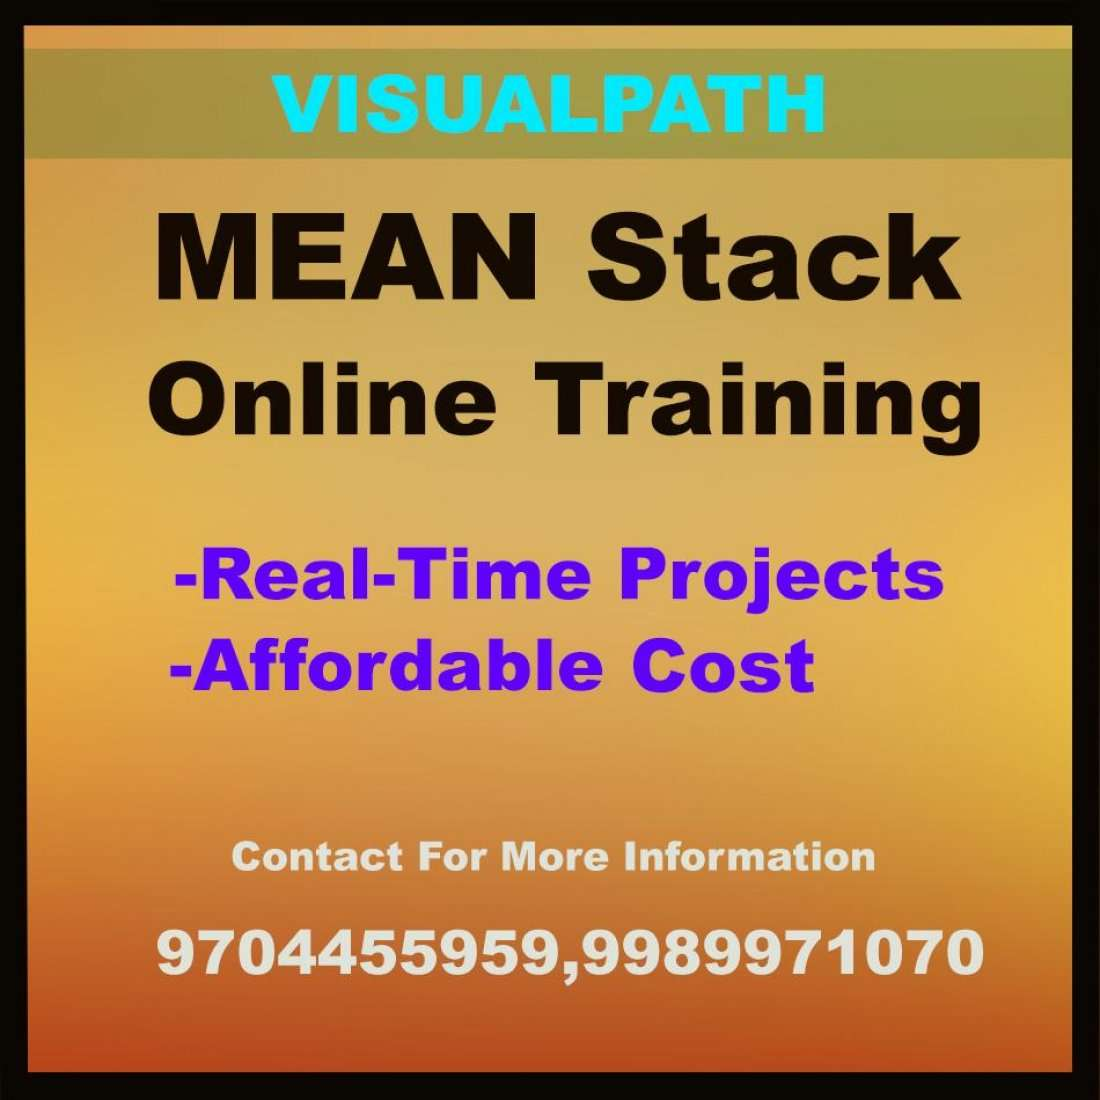 MEAN Stack Training In Hyderabad With Affordable Cost At